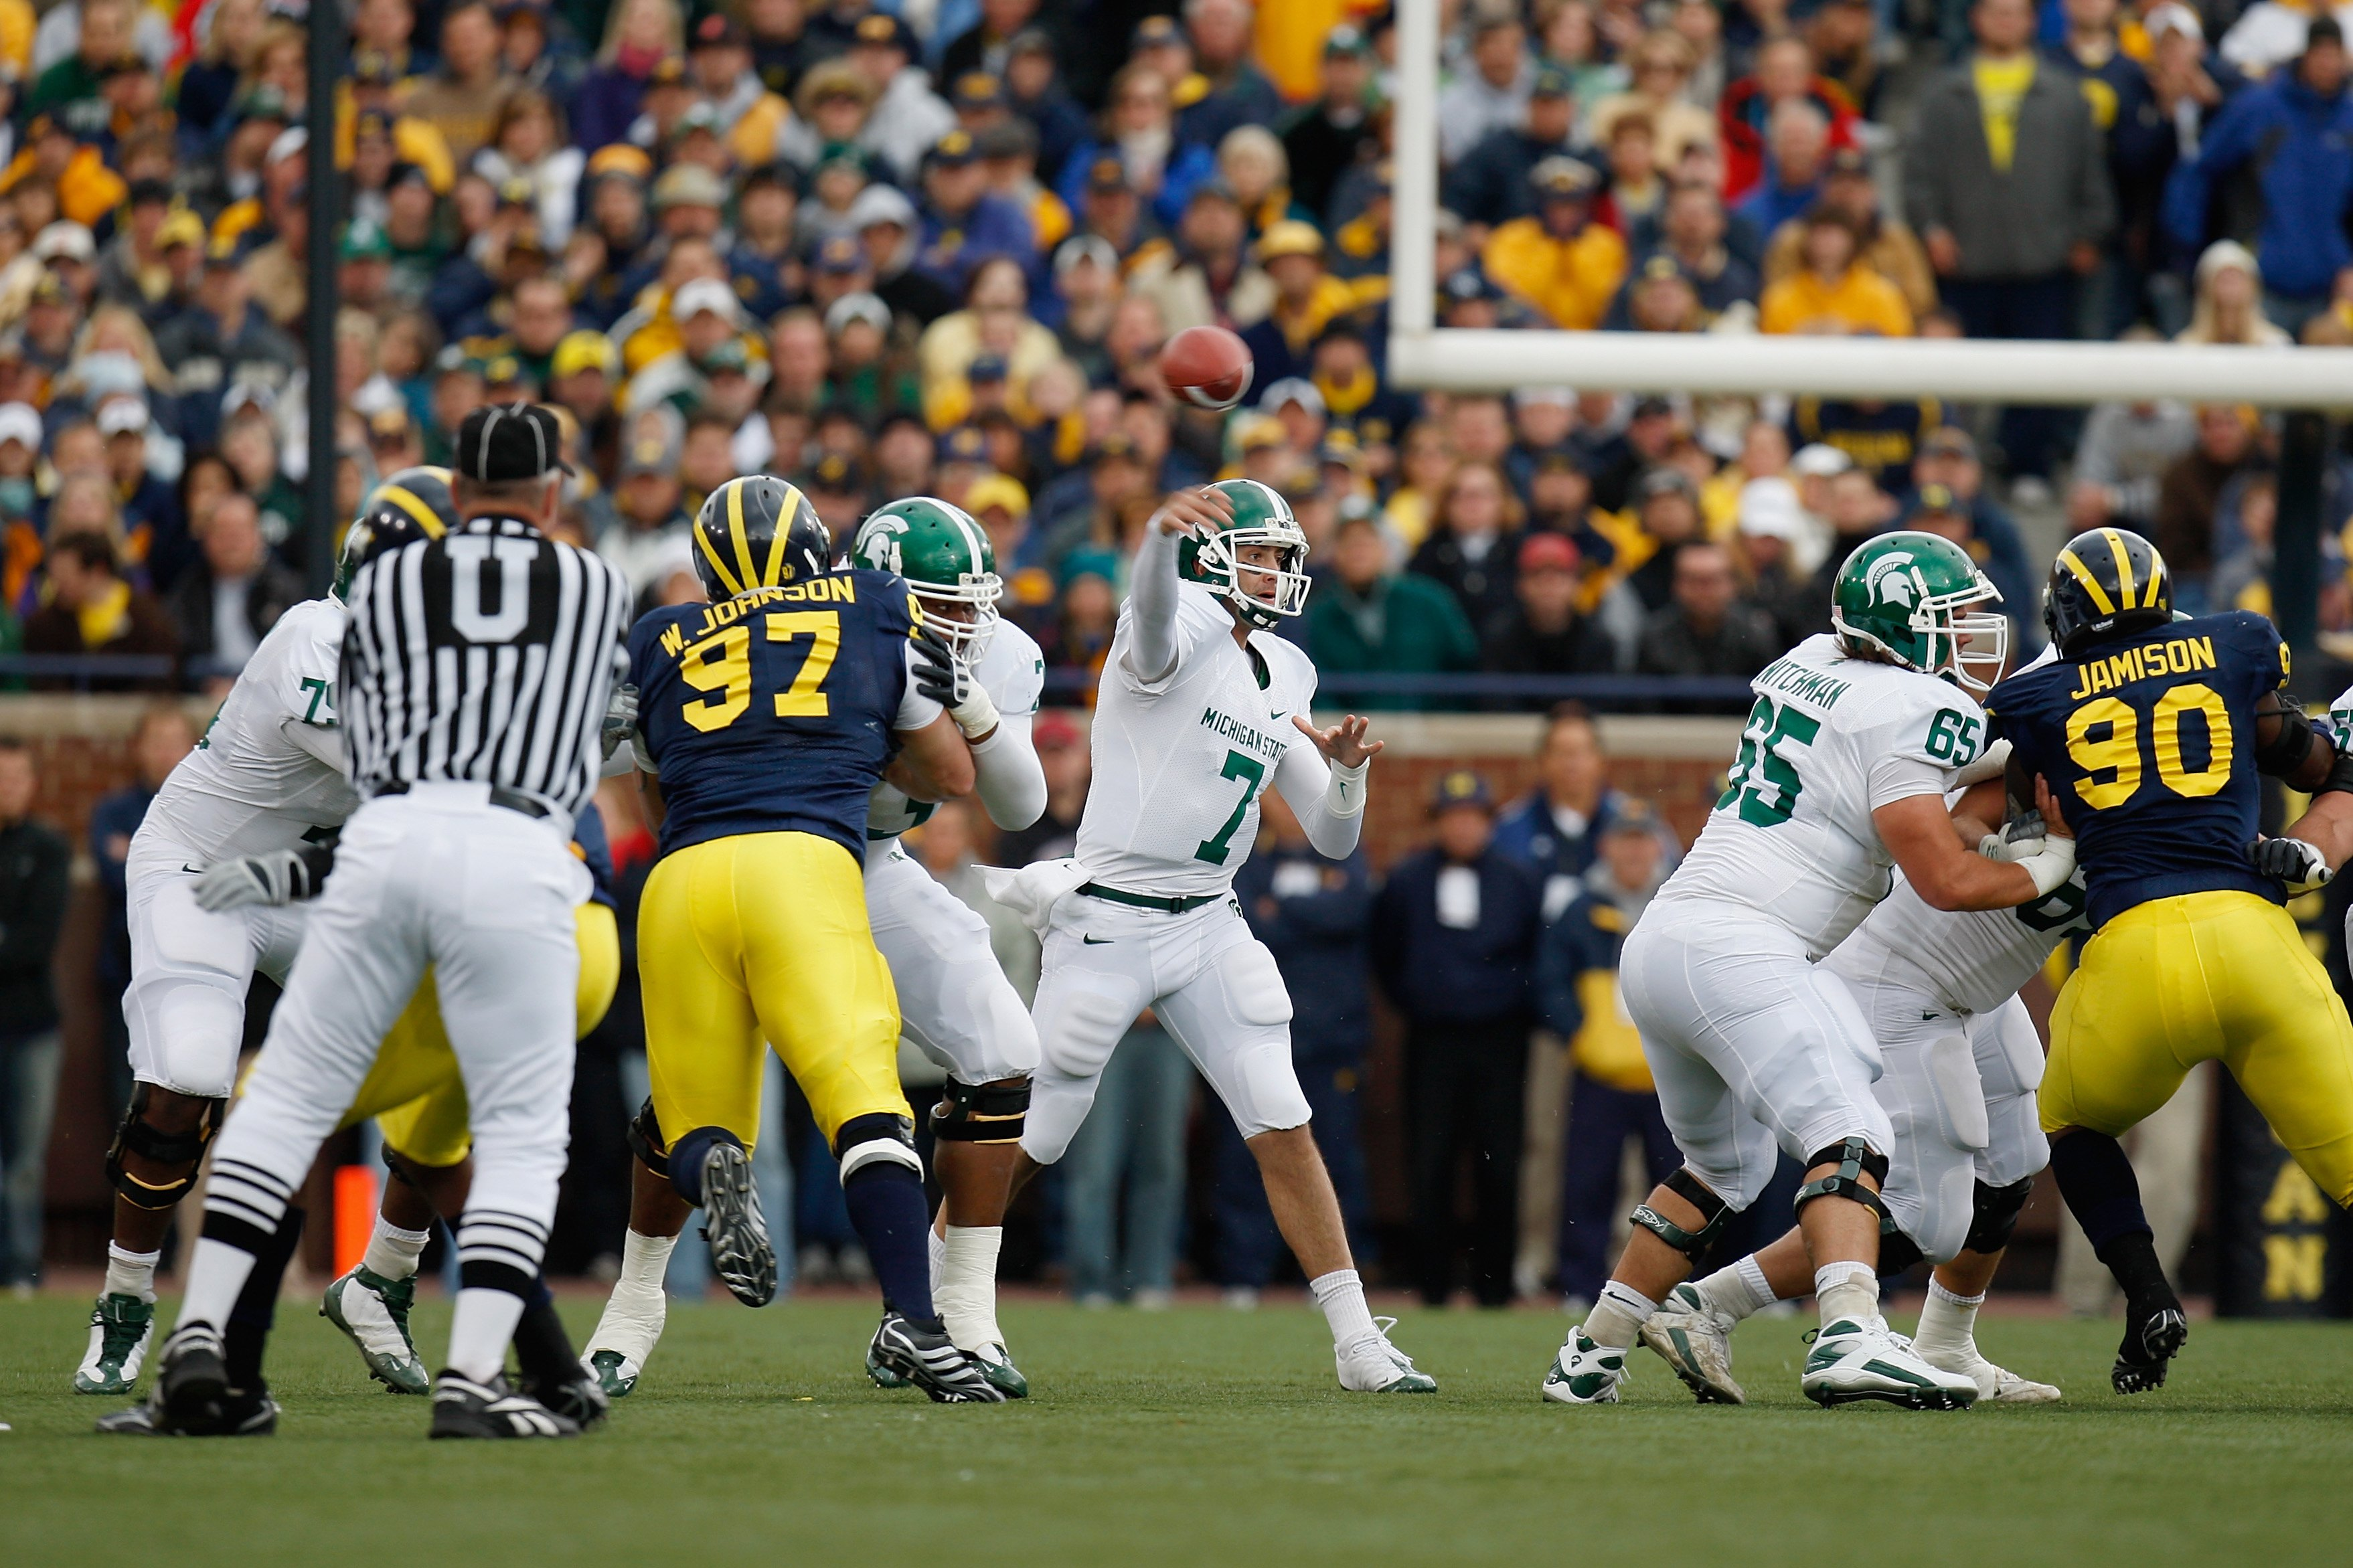 ANN ARBOR, MI - OCTOBER 25:  Brian Hoyer #7 of the Michigan State Spartans passes the ball during the game against the Michigan Wolverines on October 25, 2008 at Michigan Stadium in Ann Arbor, Michigan. Michigan State won the game 35-21. (Photo by Gregory